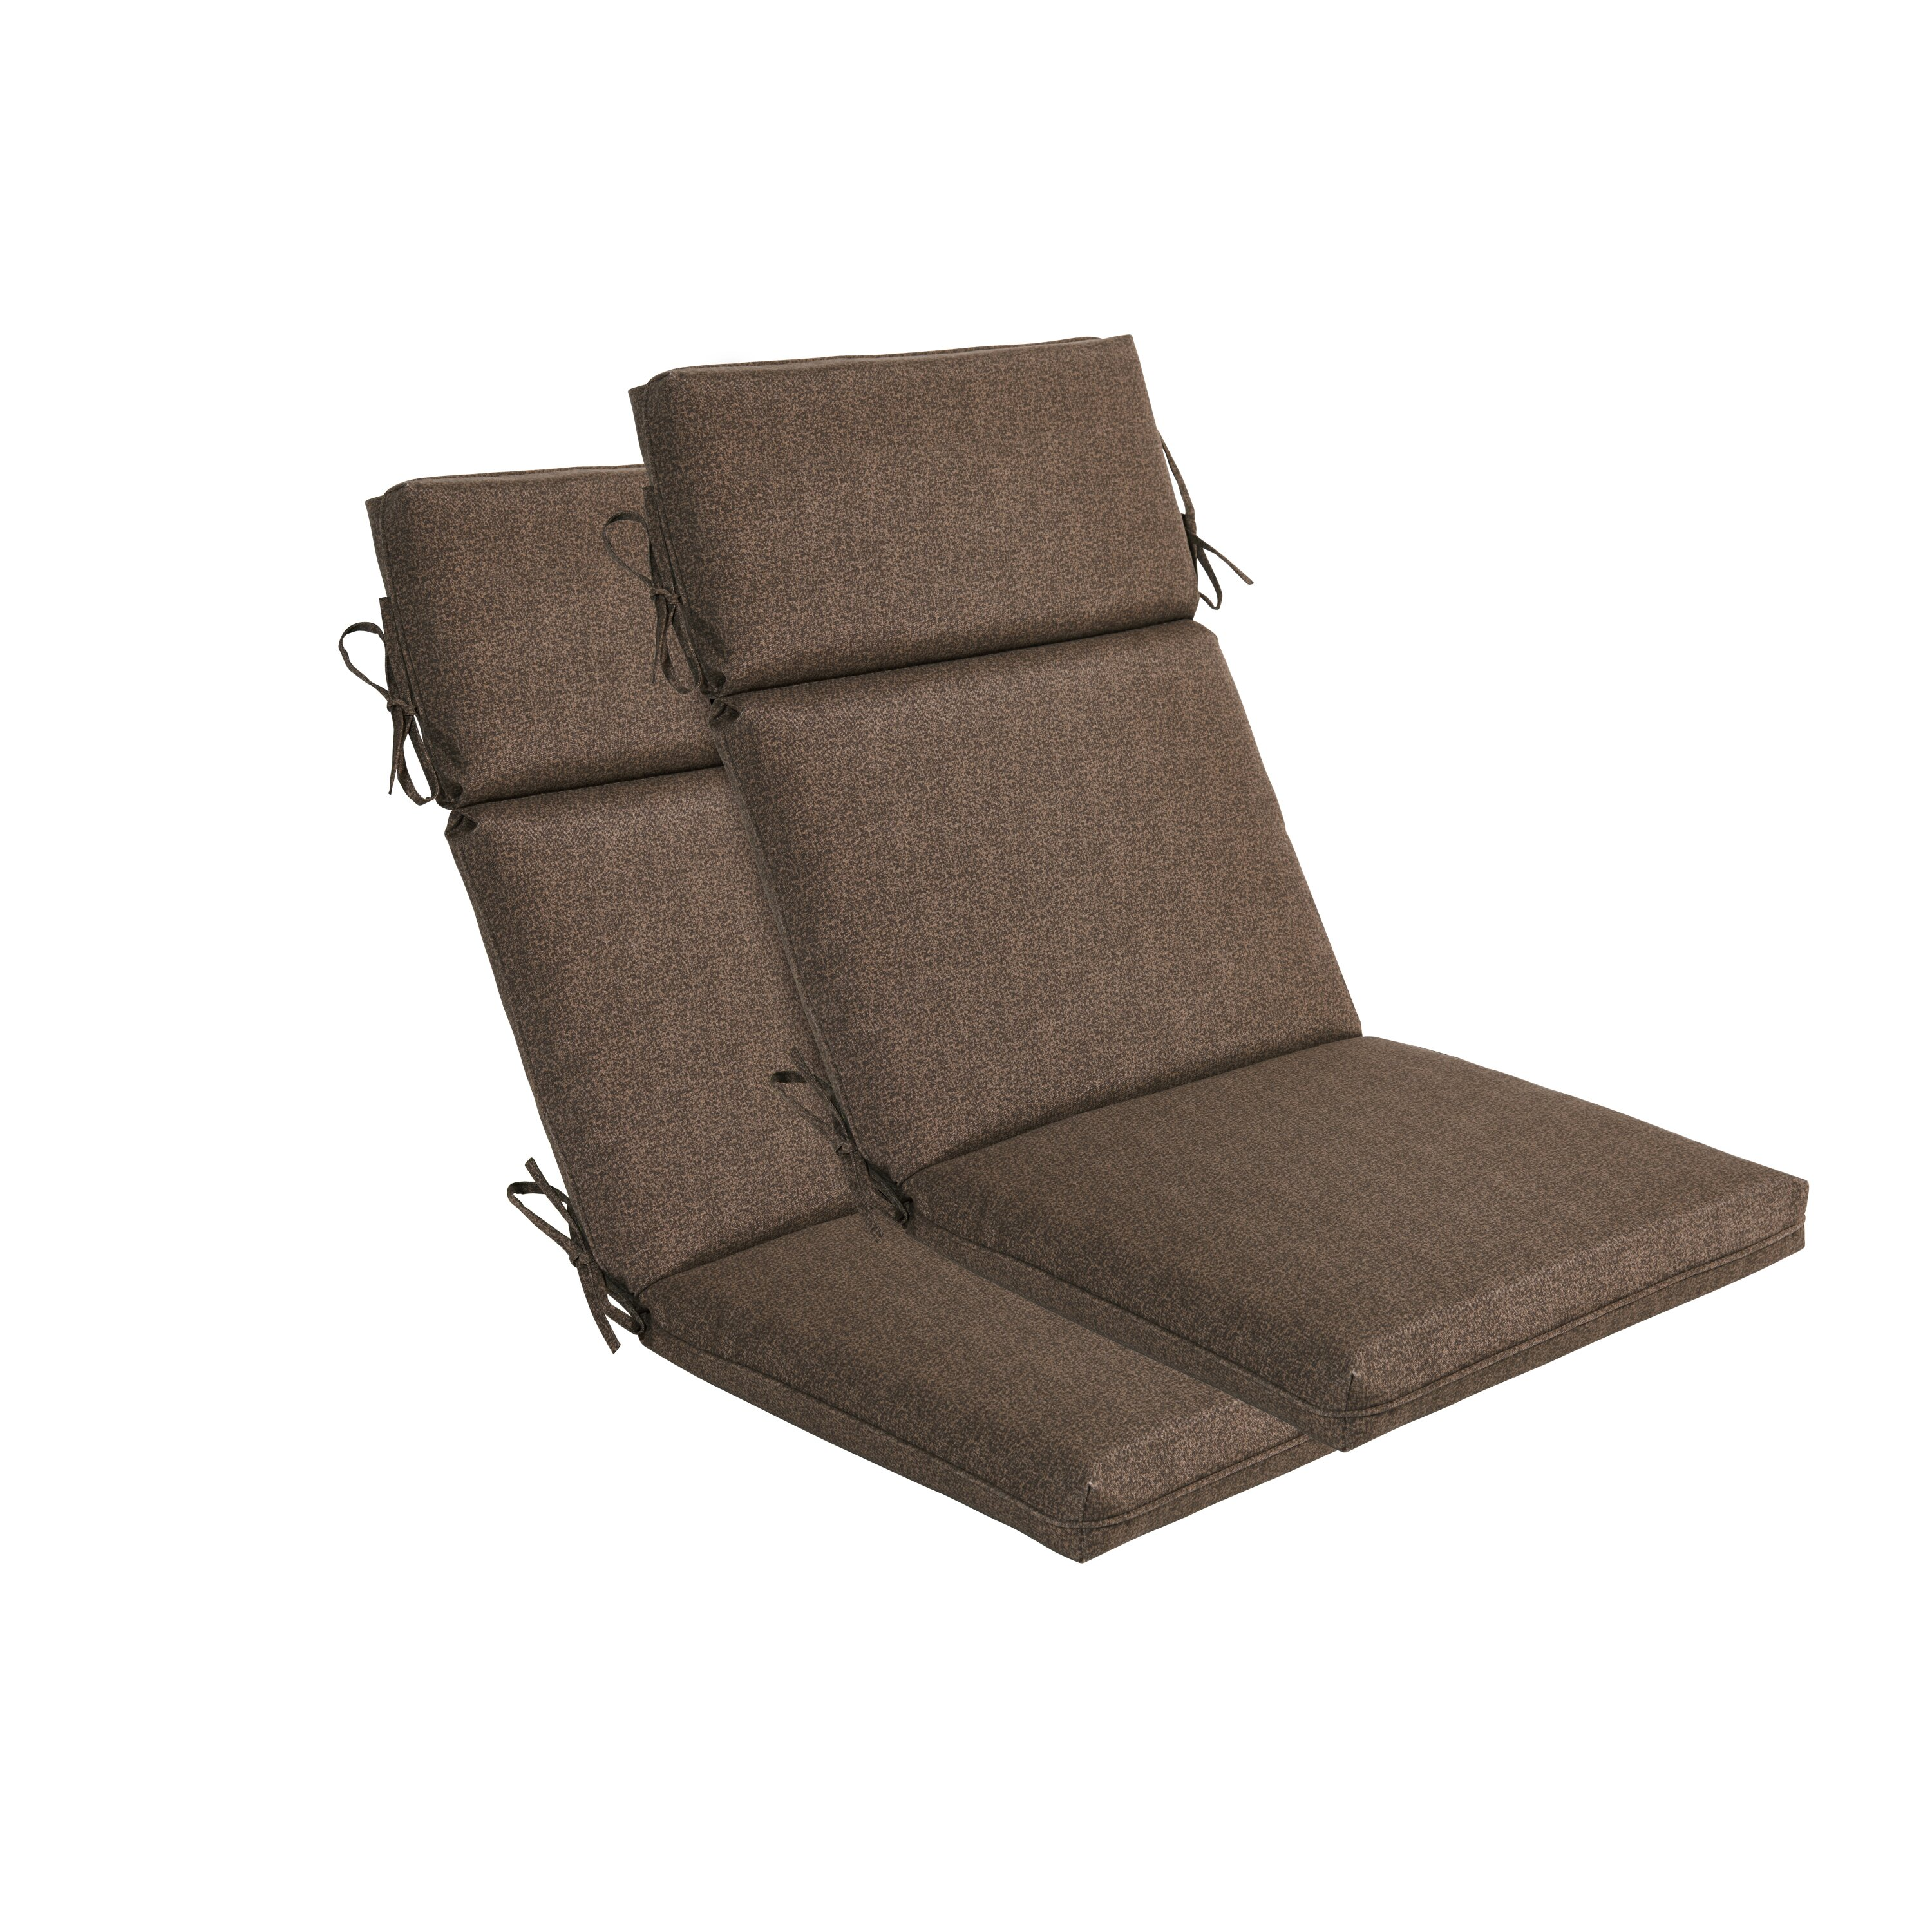 Bossima Outdoor Lounge Chair Cushion & Reviews